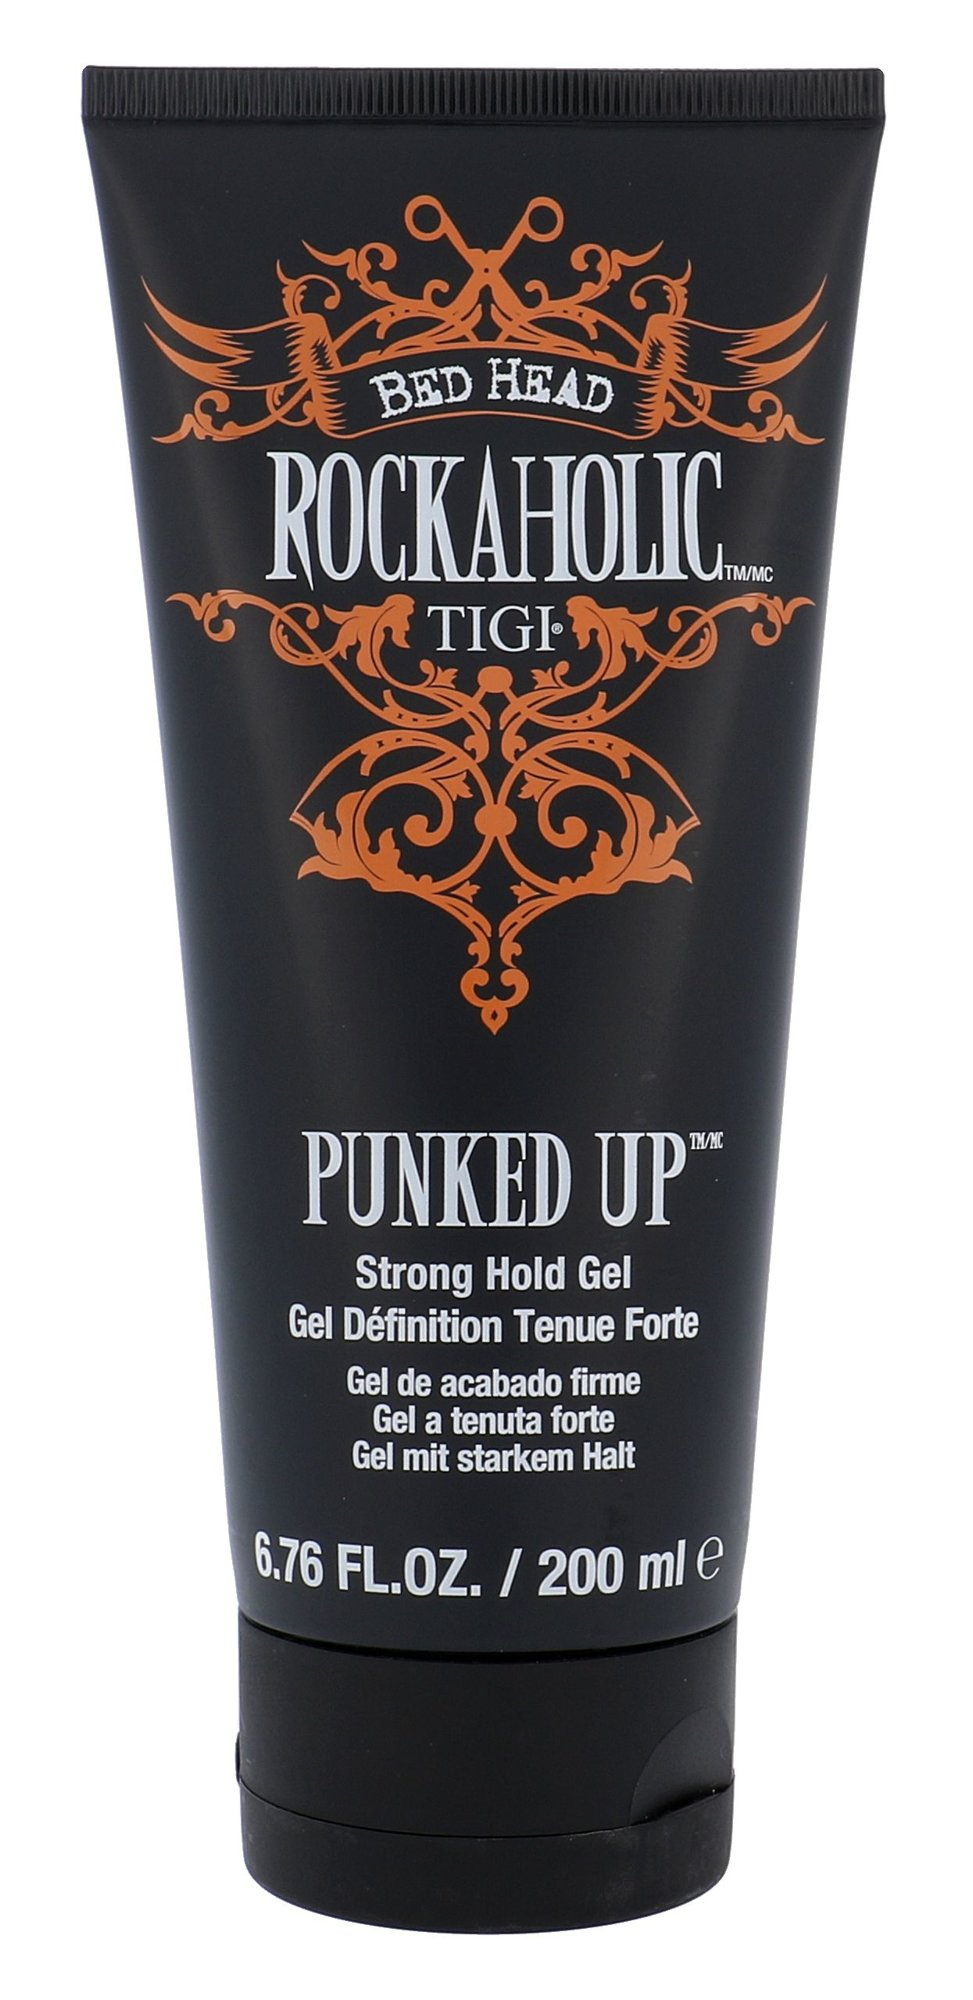 Tigi Rockaholic Punked Up Cosmetic 200ml